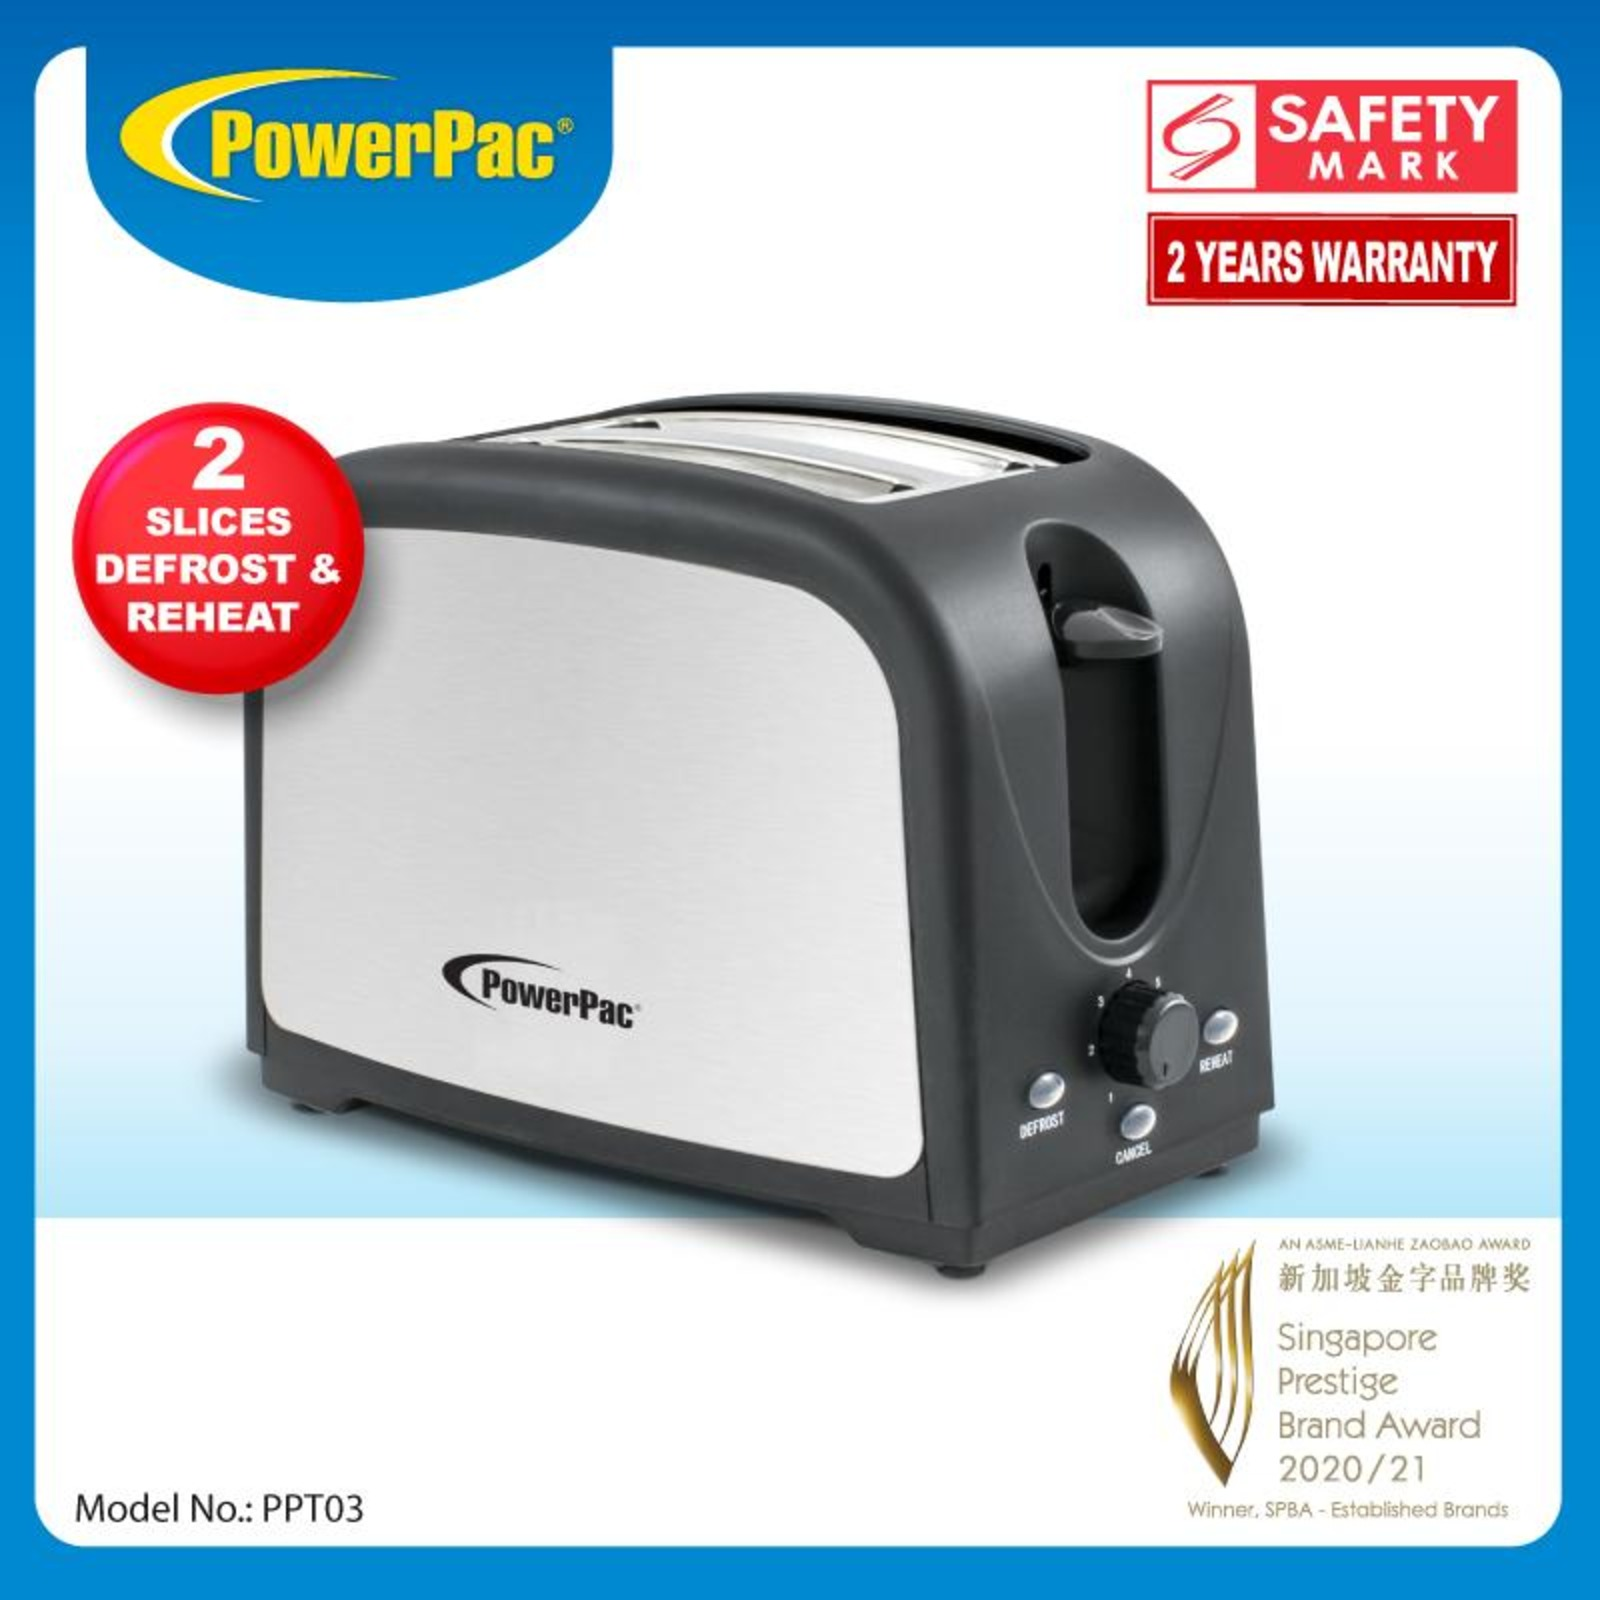 PowerPac (PPT03) Bread Toaster